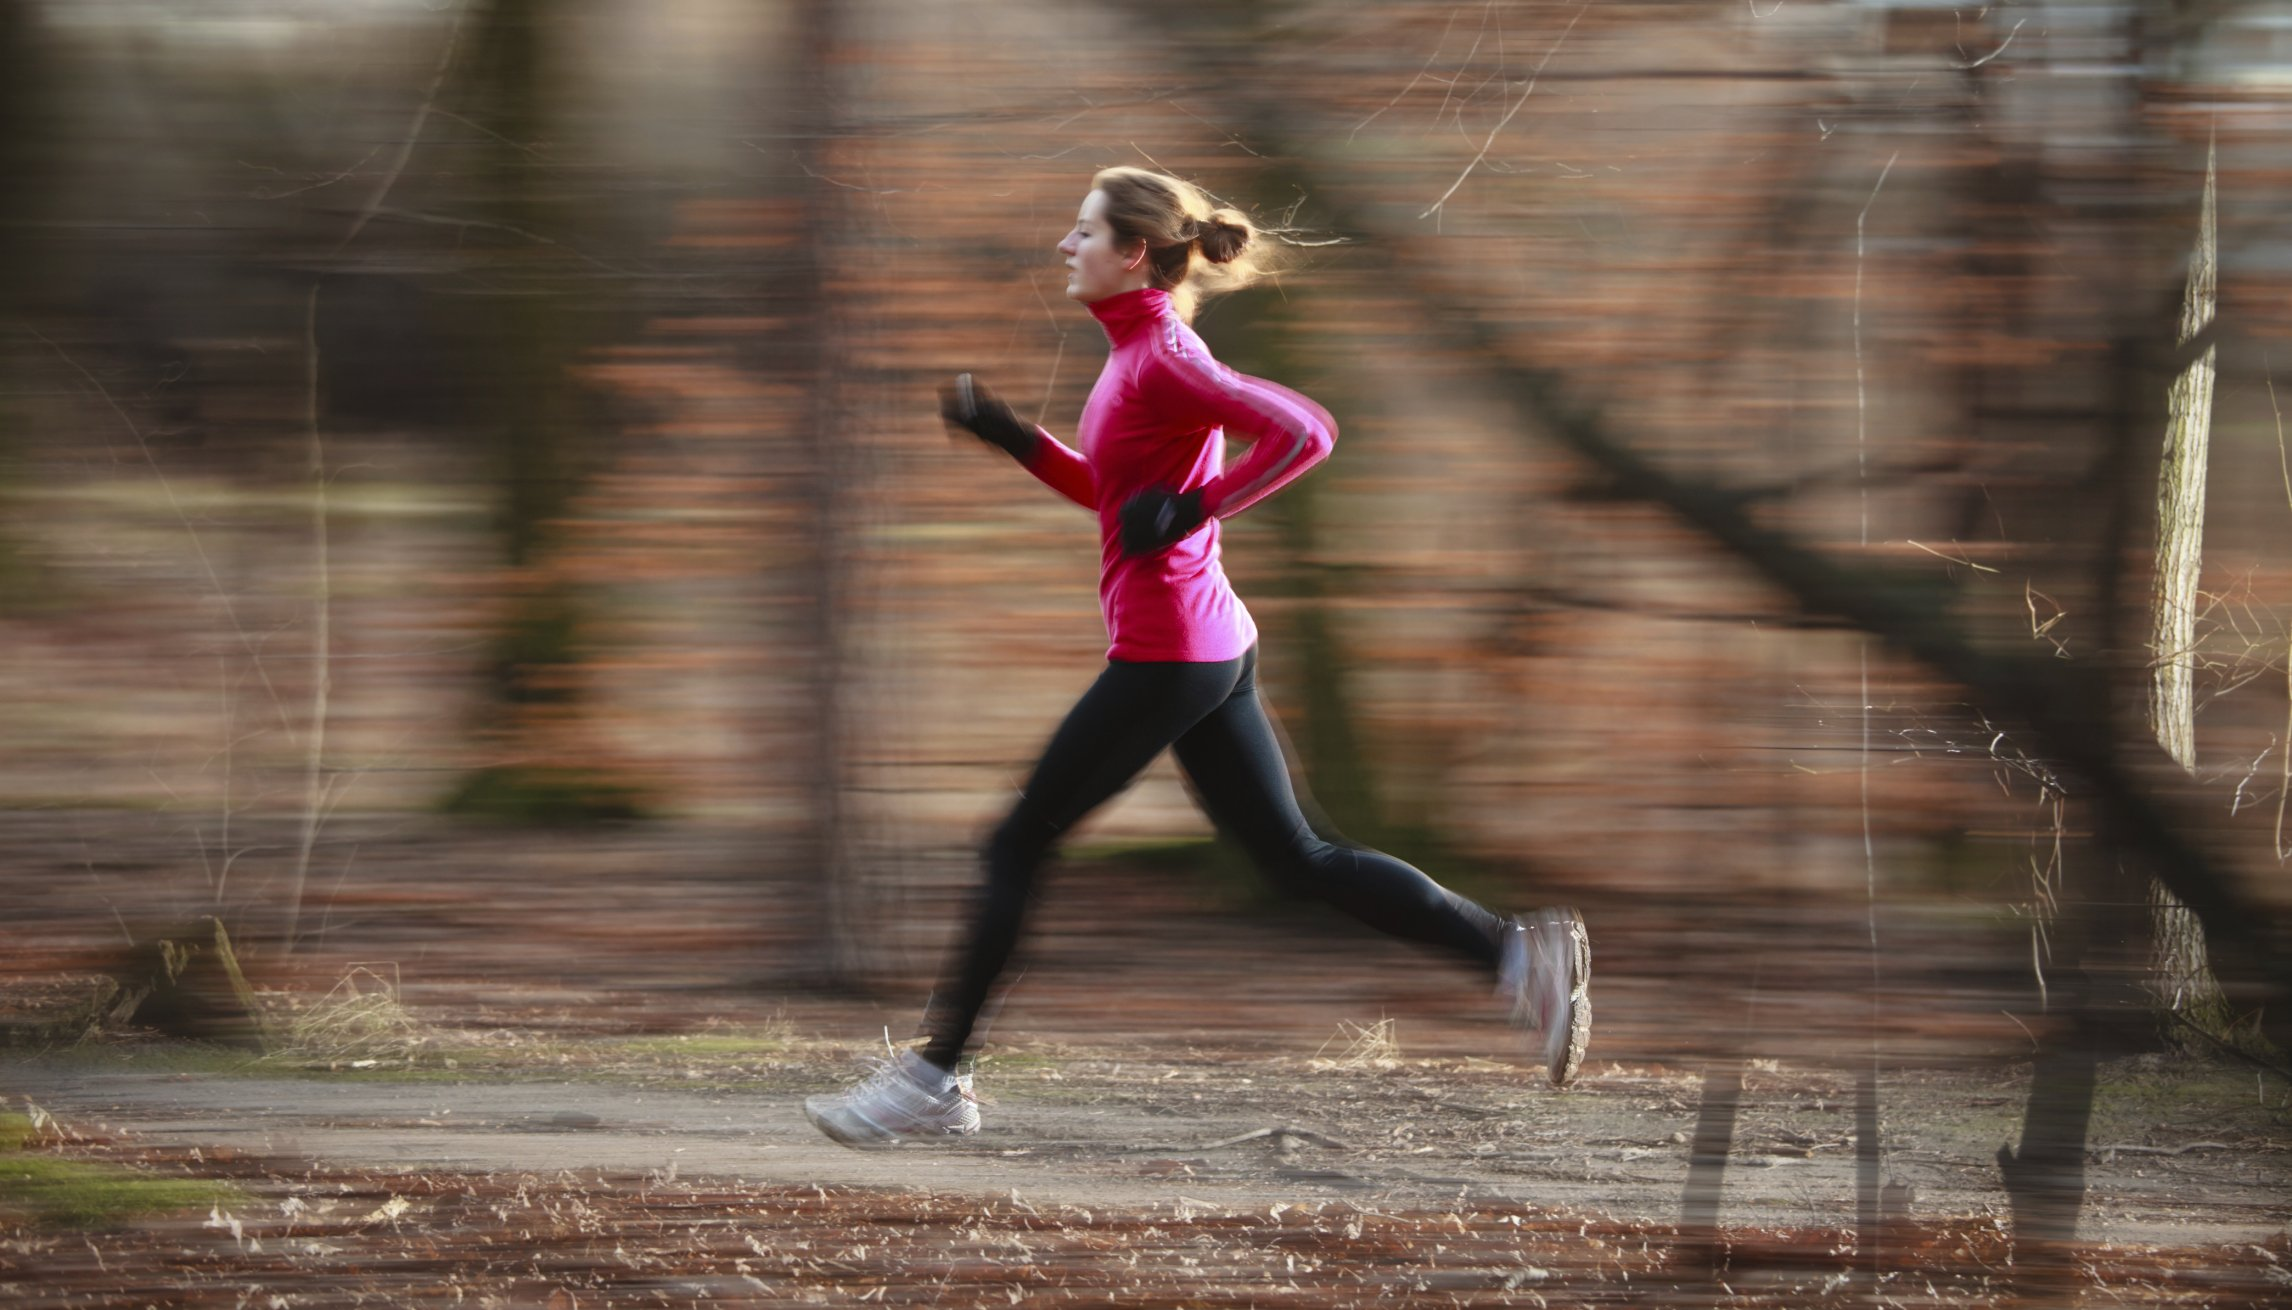 Young woman running outdoors in a city park